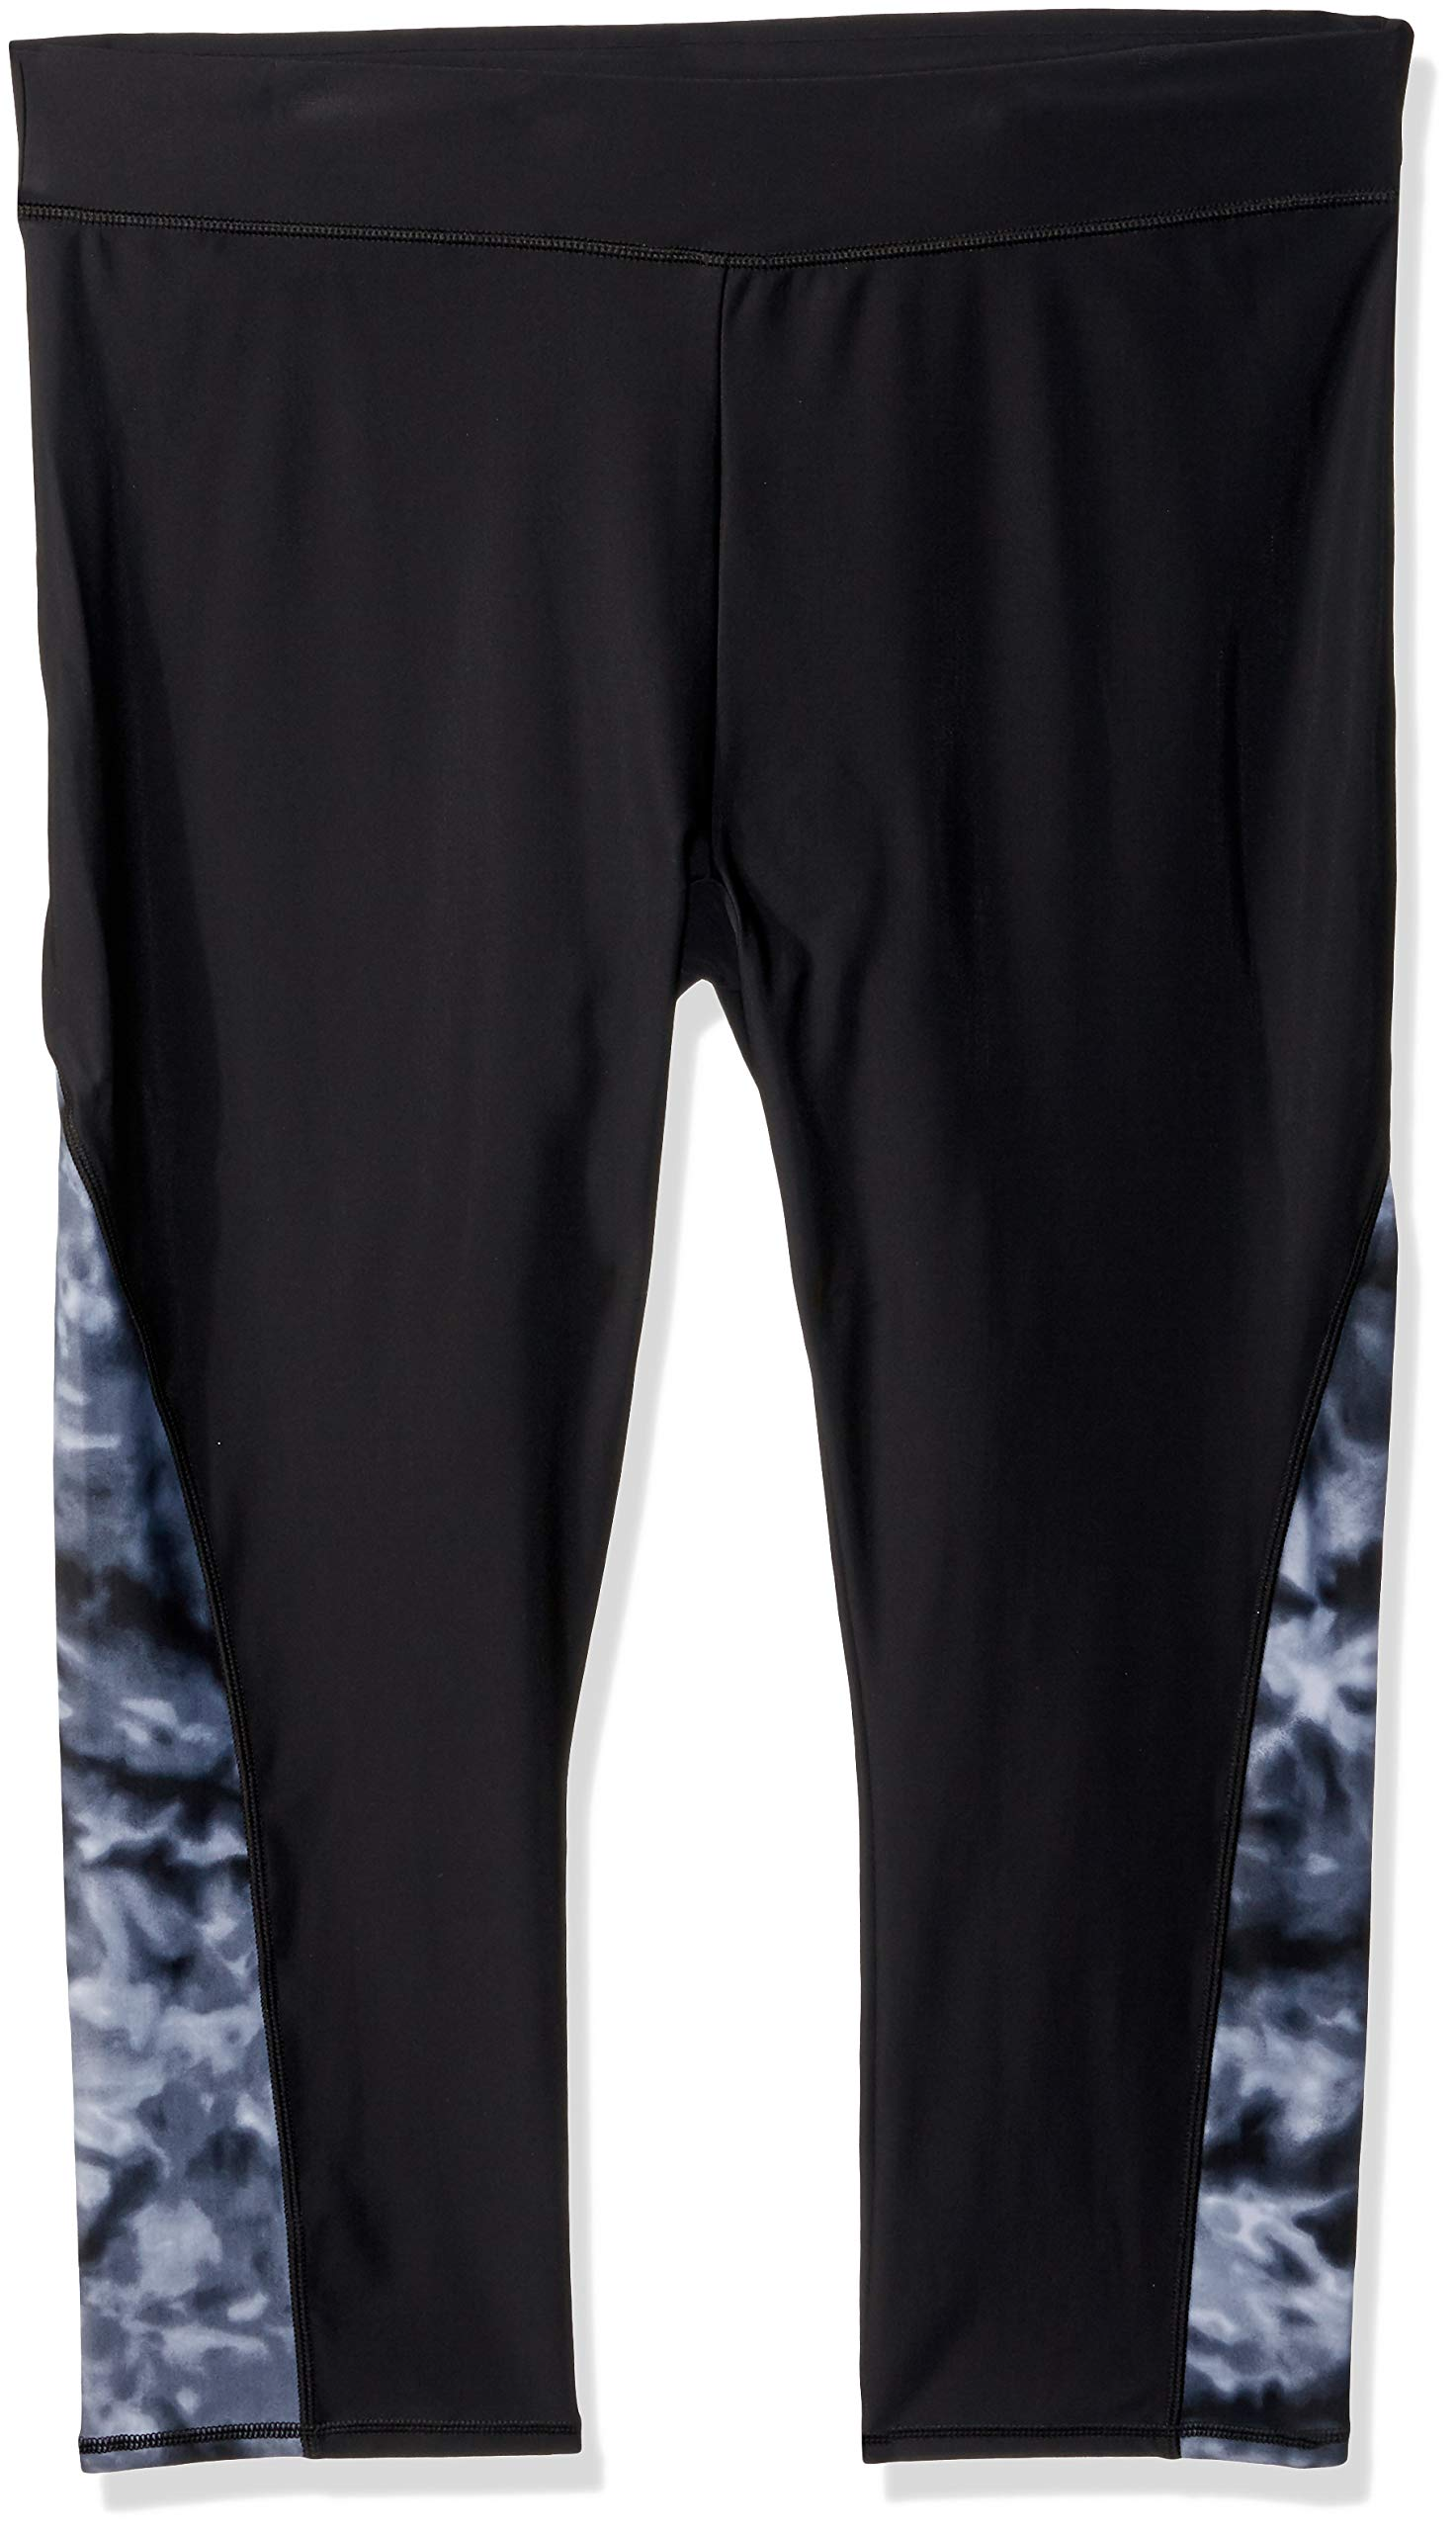 Speedo Women's Paddle Pants, Black/Grey, Medium by Speedo